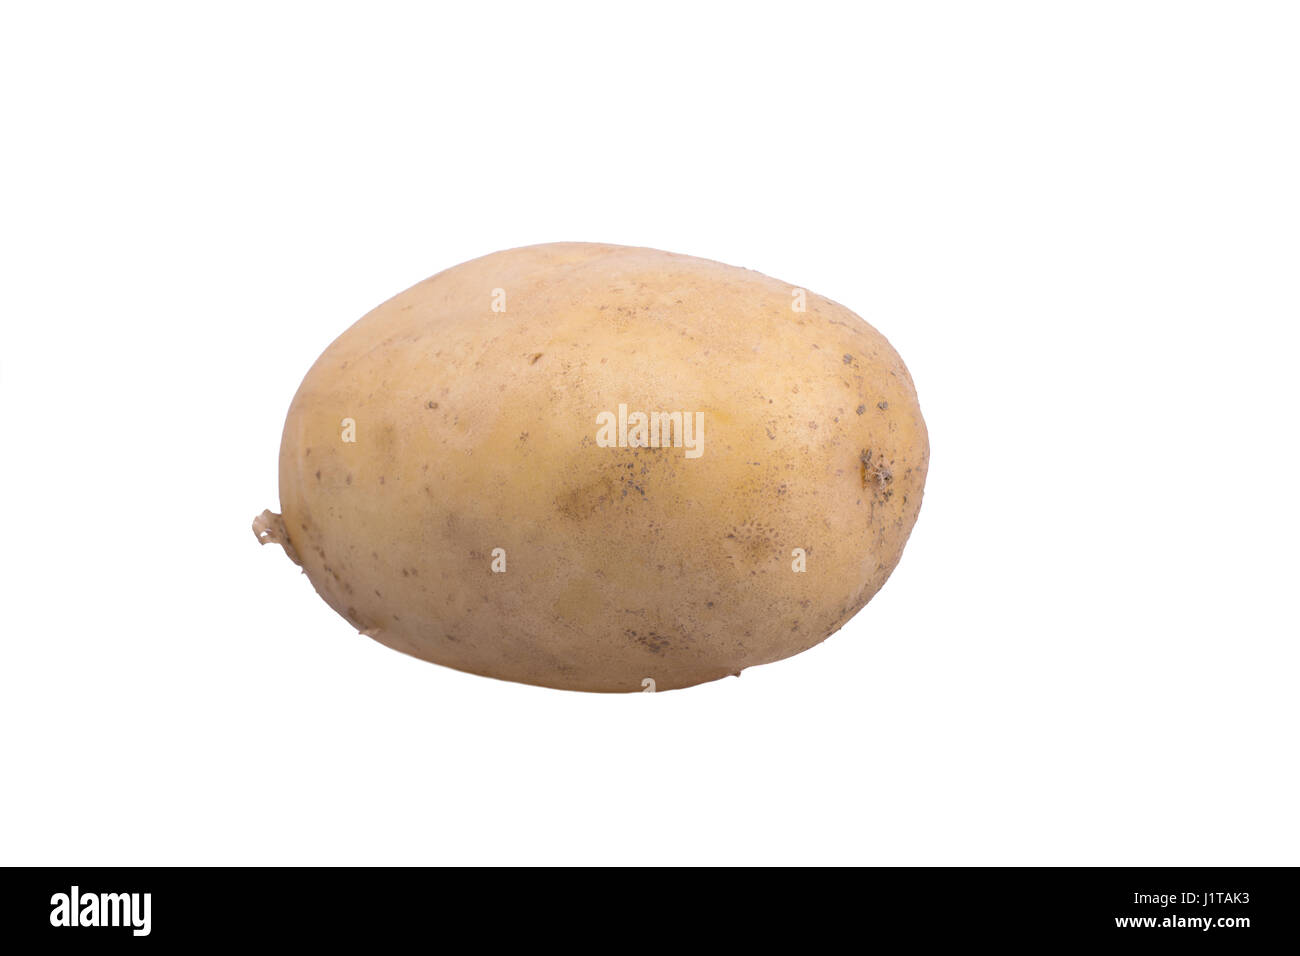 fresh medium sized potato on white background - Stock Image